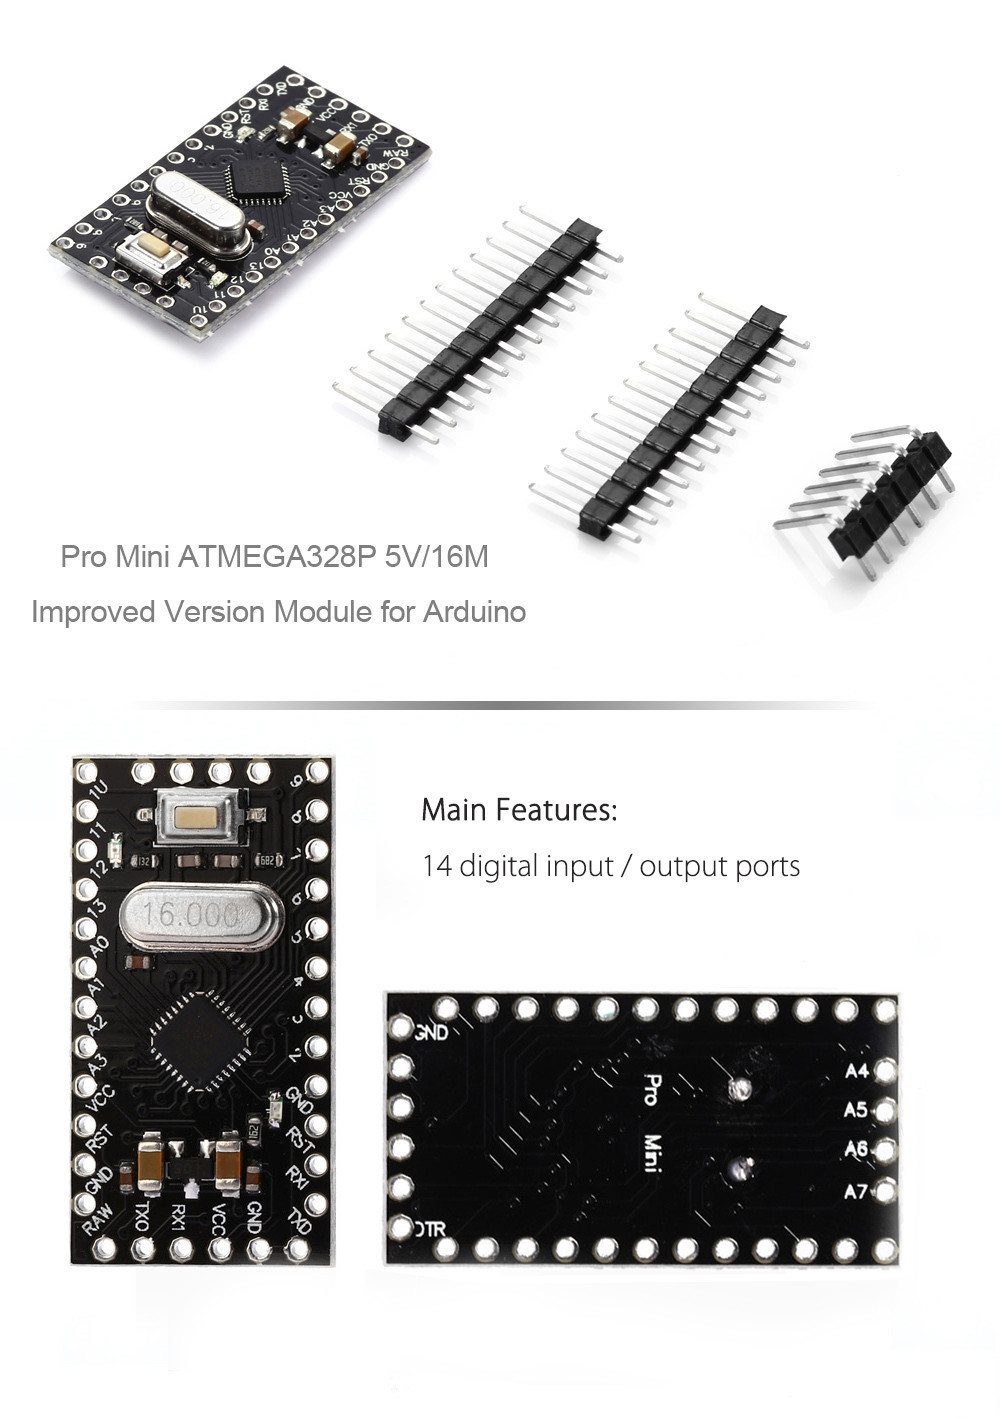 Pro Mini ATMEGA328P 5V 16M Improved Version Module for Arduino